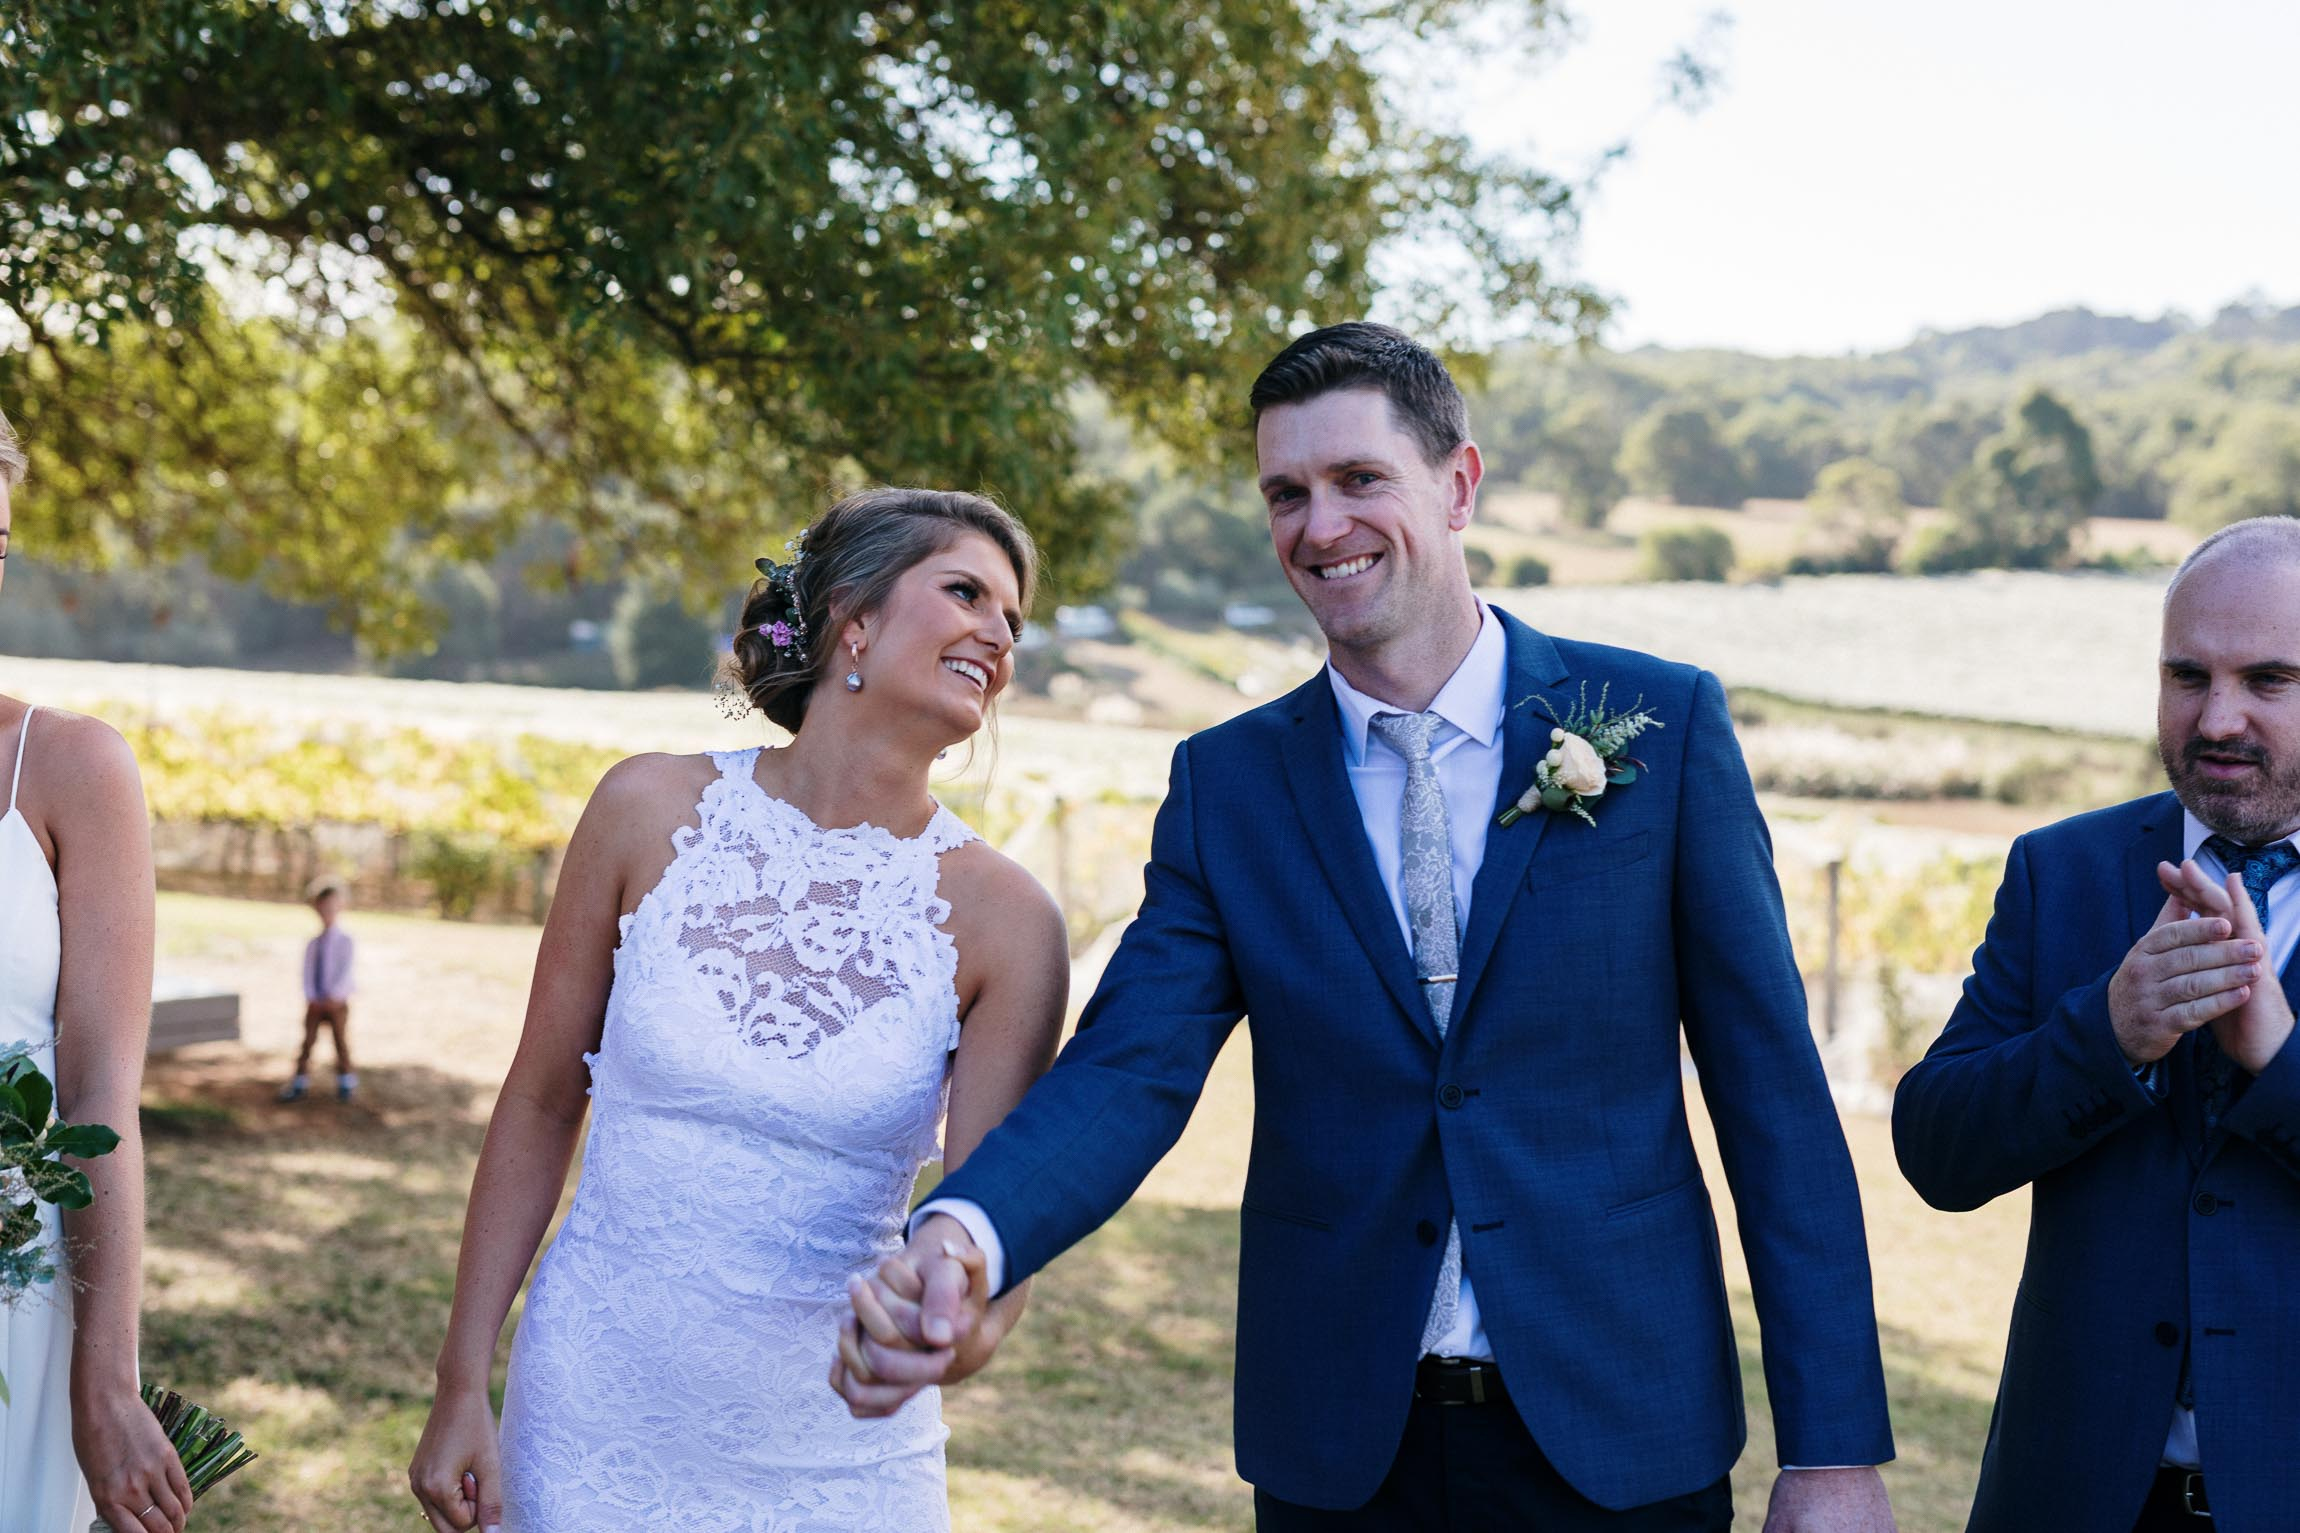 lachlan-scallion-melbourne-victoria-austrlia-mornington-peninsula-candid-relaxed-natural-chilled-wedding-photographyglasshaus-richmond-422.jpg